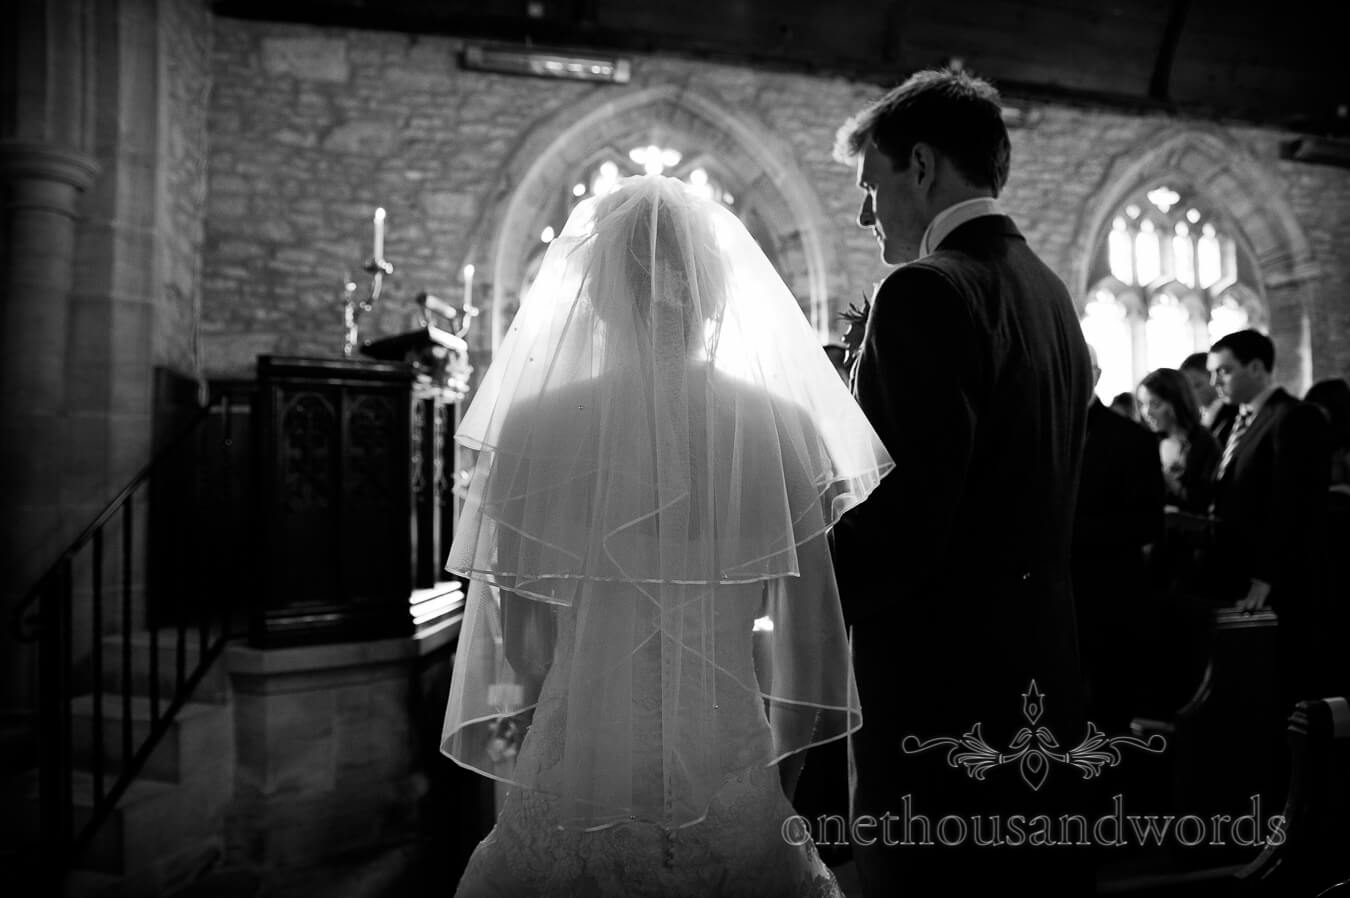 Silouette photograph of bride and groom at church wedding ceremony